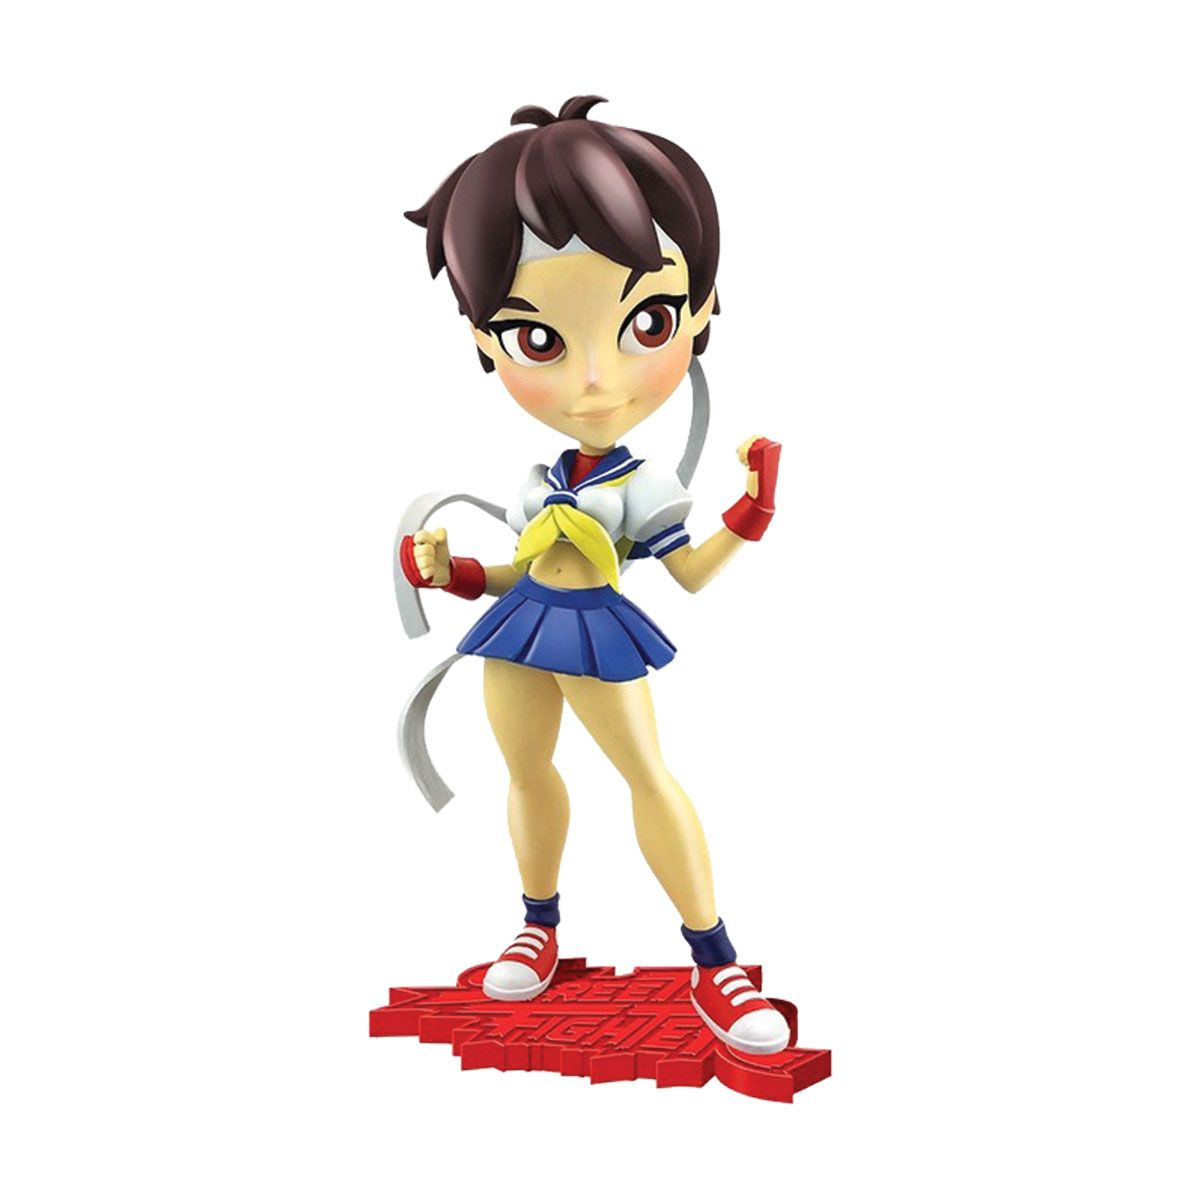 Sakura Street Fighter Knockouts Series 1 Figure Cryptozoic